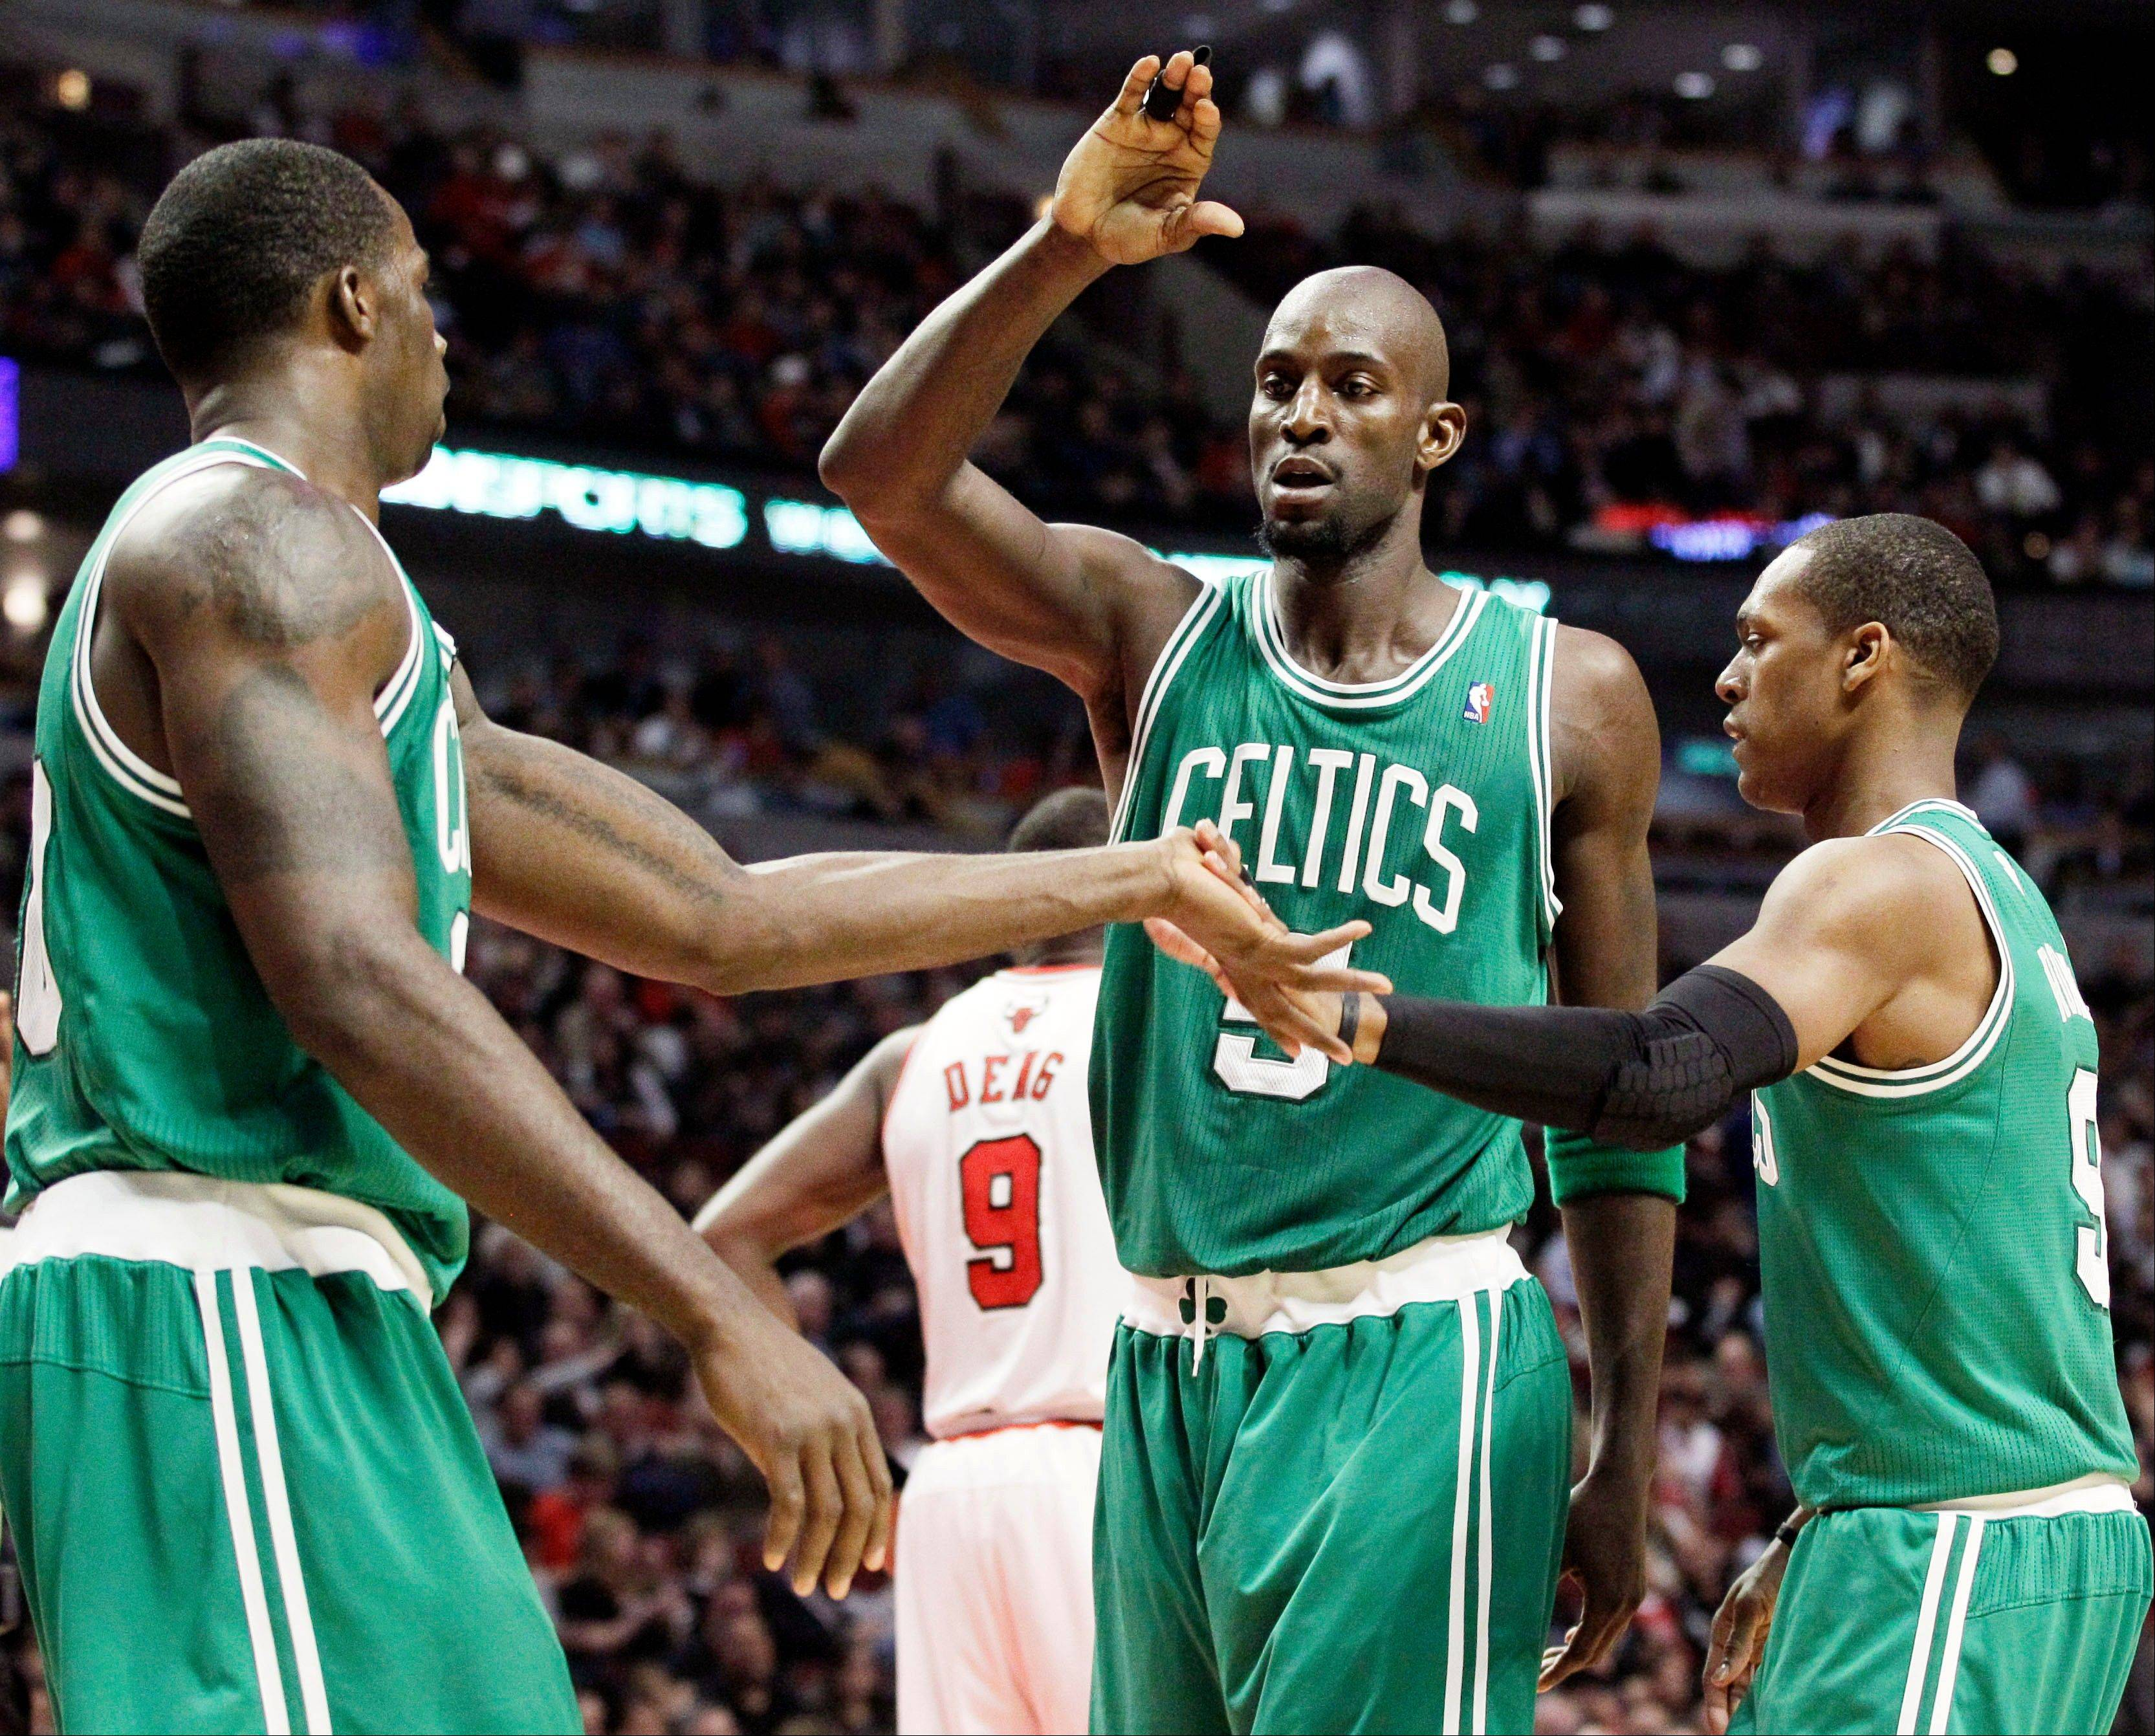 Boston Celtics forward Brandon Bass, left, celebrates with forward Kevin Garnett (5) and guard Rajon Rondo (9) after scoring a basket during the first half of an NBA basketball game against the Chicago Bulls in Chicago, Thursday, April 5, 2012.